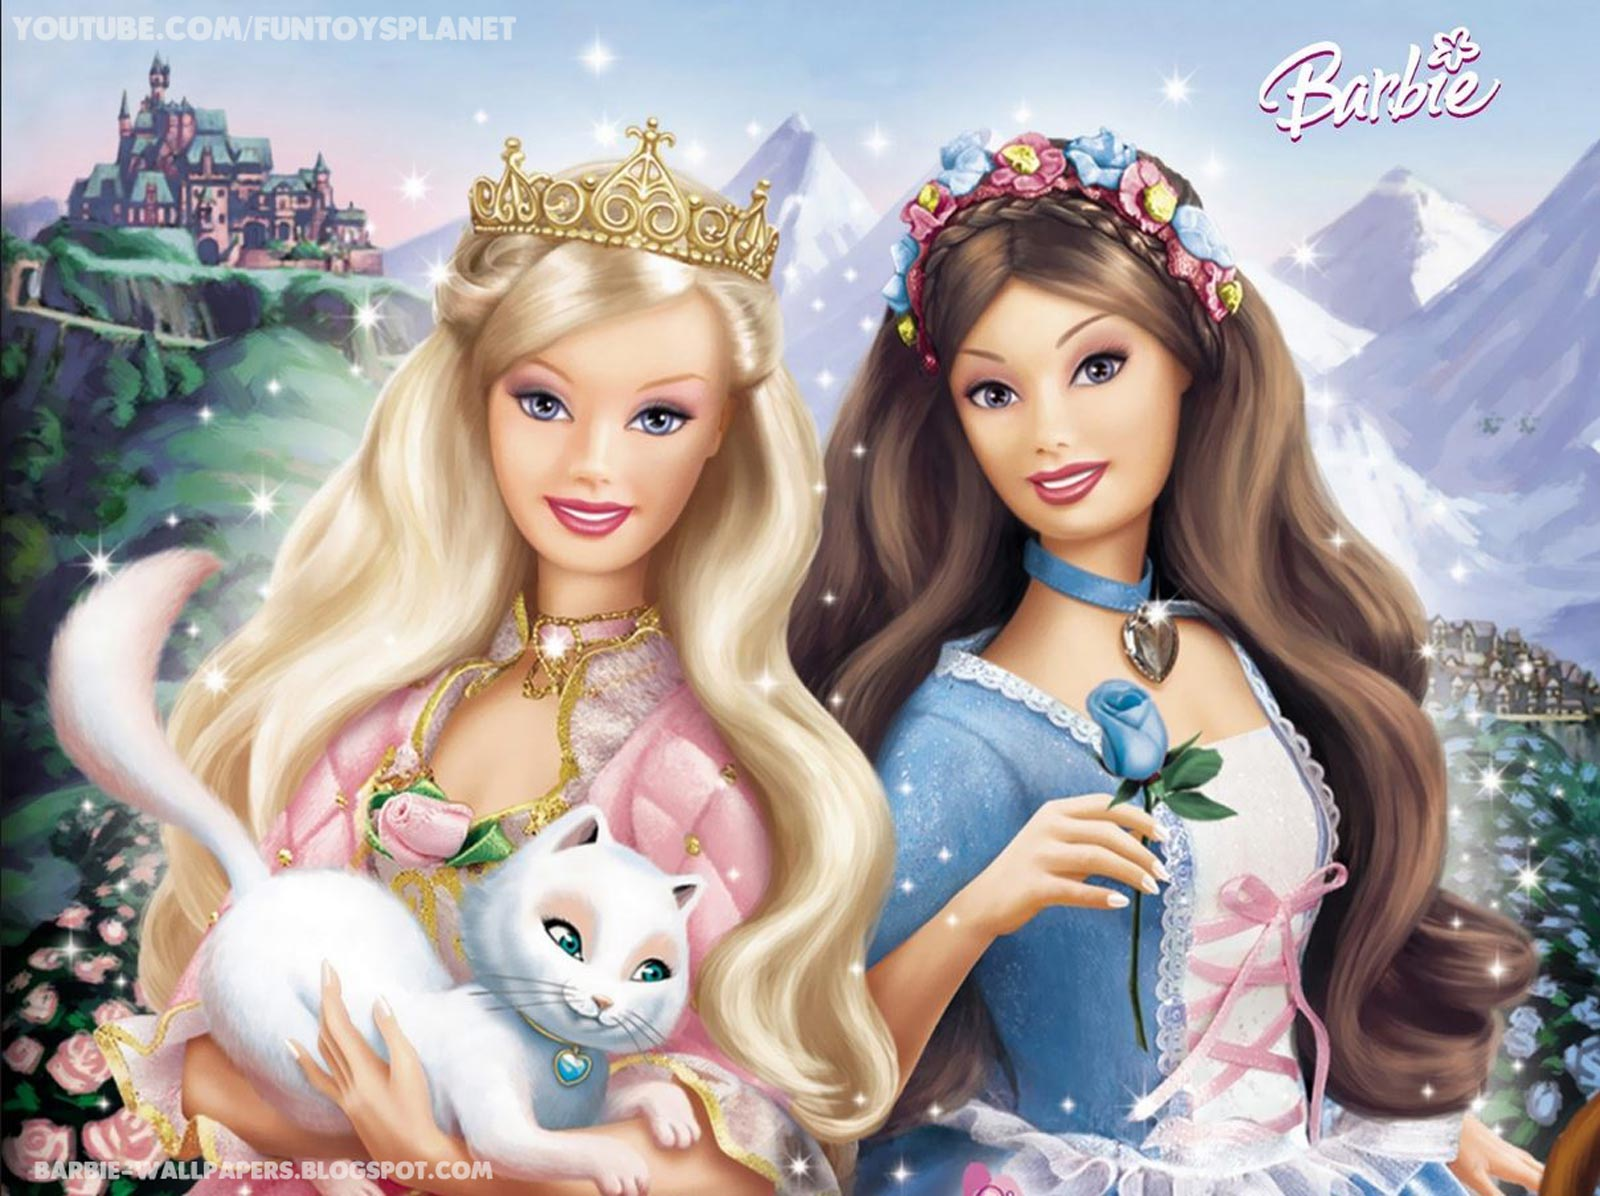 Barbie Wallpapers Barbie Wallpapers 04